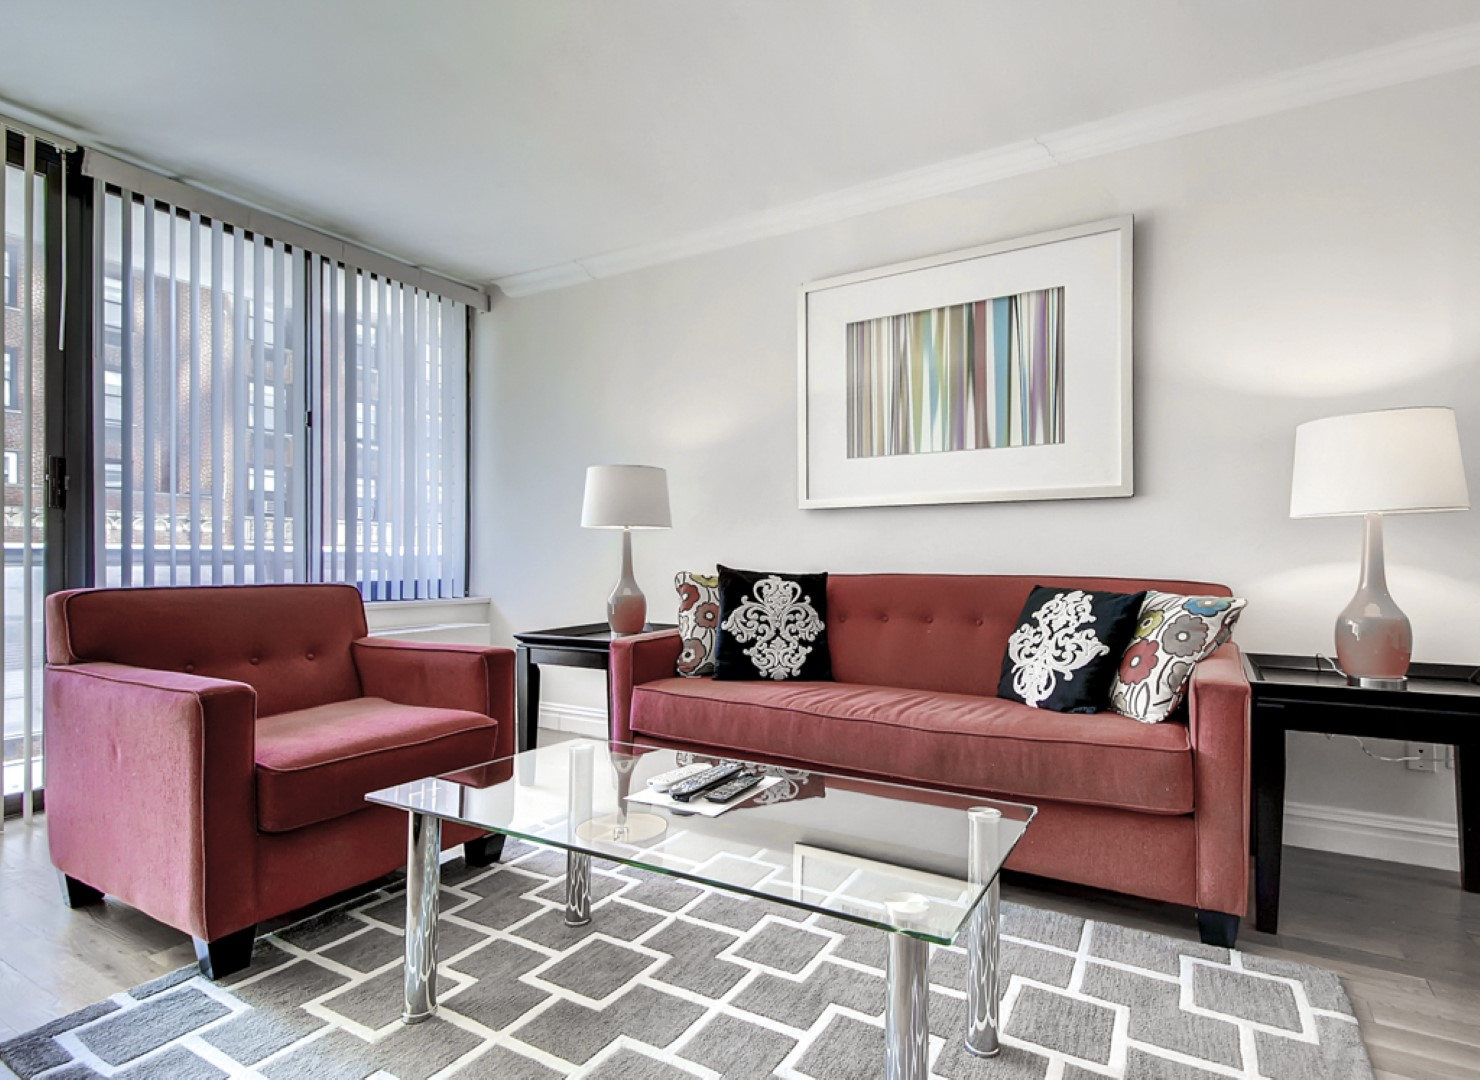 Bright living space at Ritz Plaza Apartments, Times Square, New York